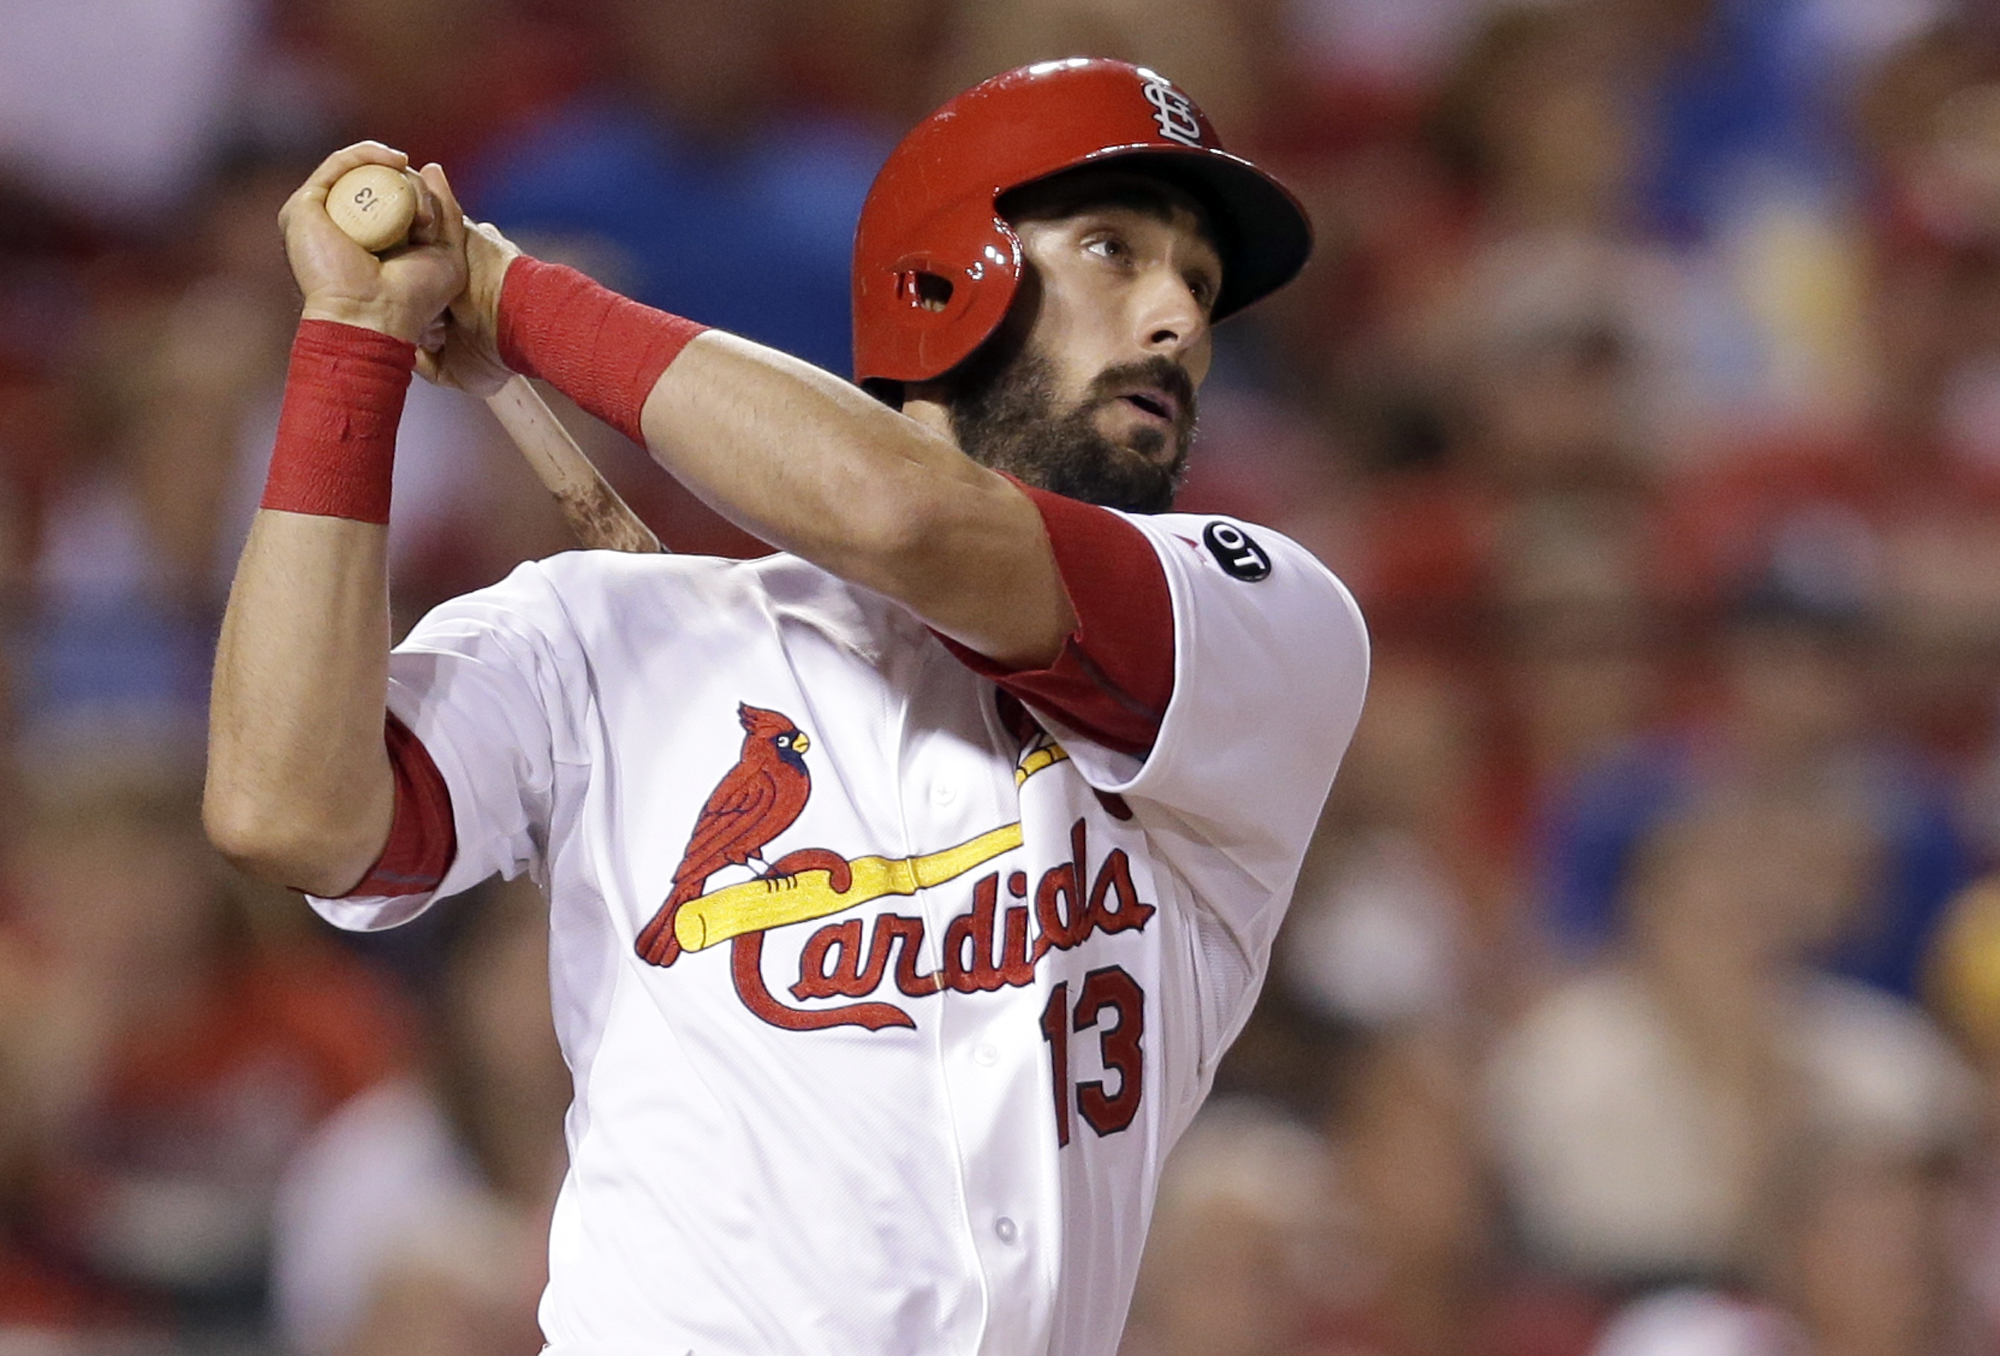 St. Louis Cardinals' Matt Carpenter watches his three-run home run during the fifth inning of a baseball game against the Chicago Cubs Tuesday, May 5, 2015, in St. Louis. (AP Photo/Jeff Roberson)